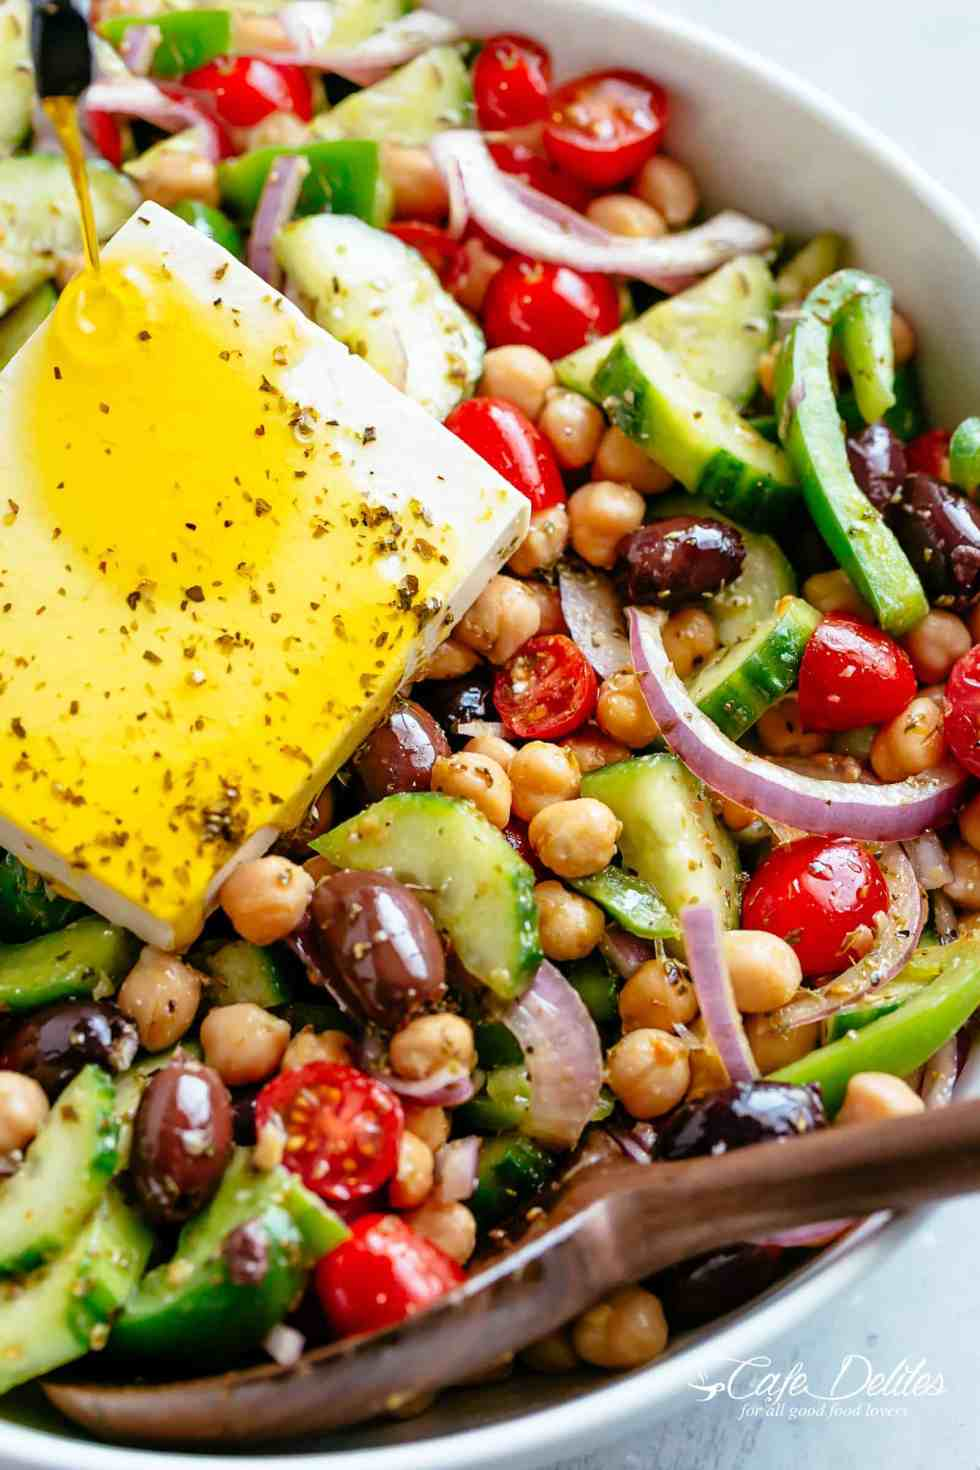 GreekChickpeaSalad is healthy and filling! | cafedelites.com